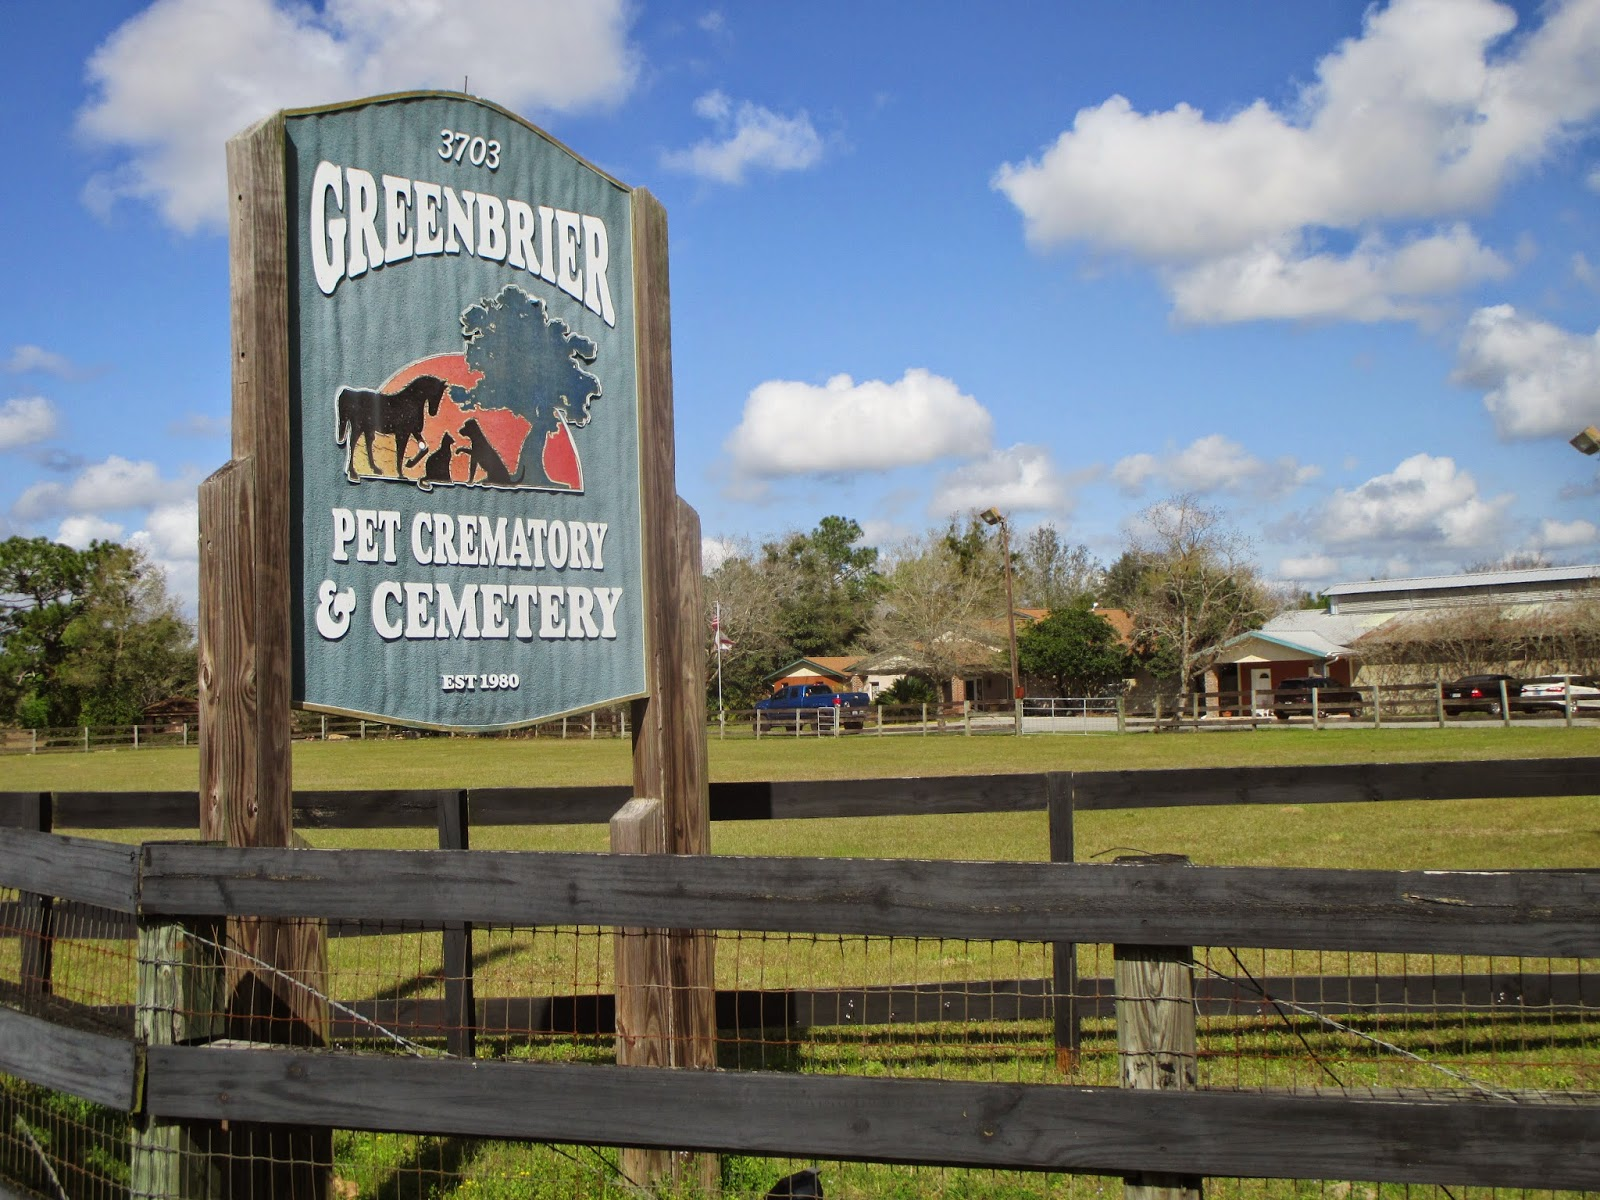 FINISHING TOUCHES: PET CREMATORY and CEMETERY